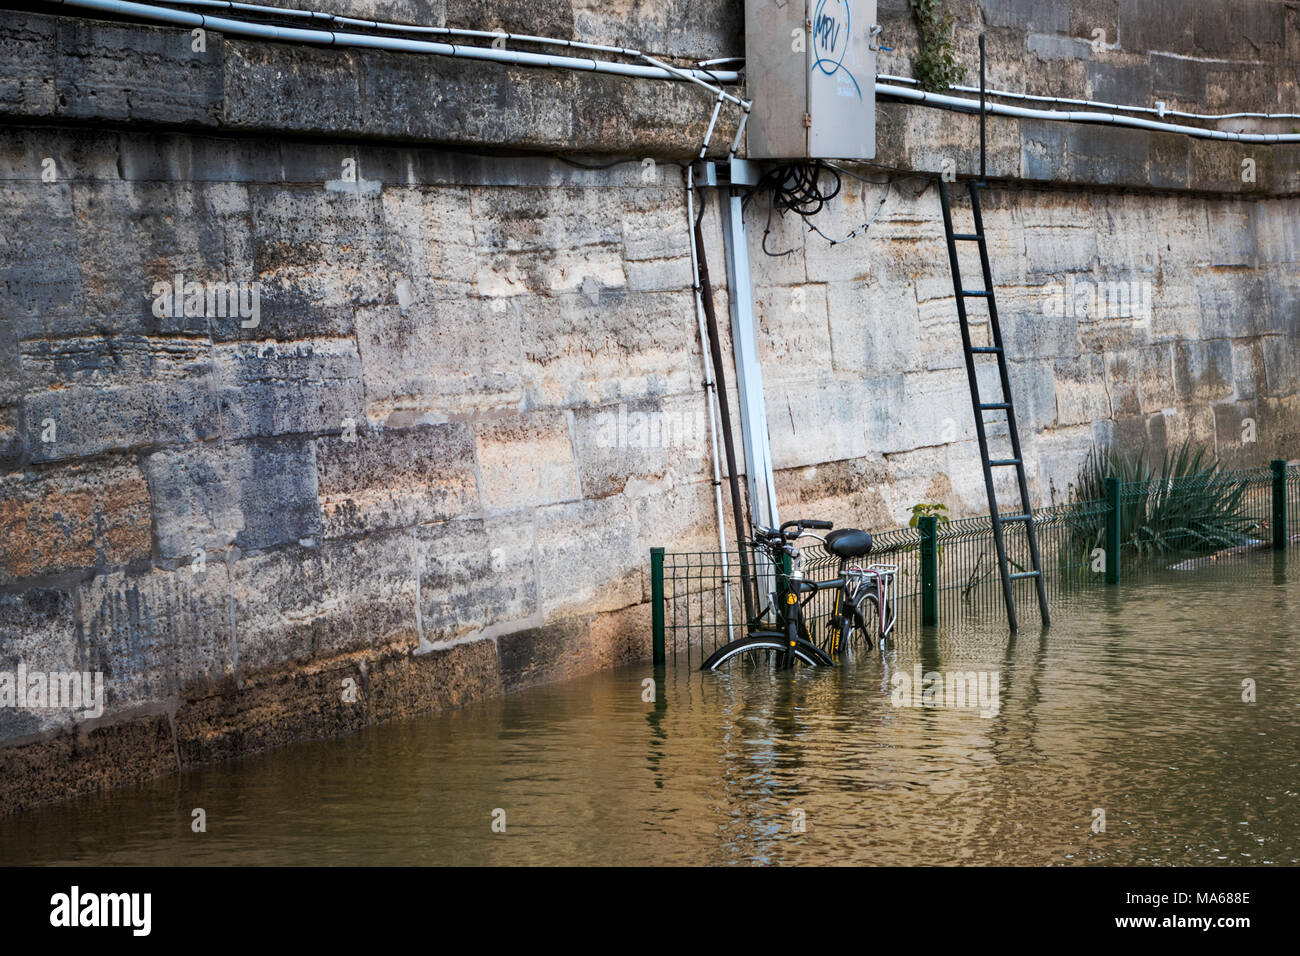 Bicycle secured to fencing submerged on a sunken pathway in the swollen river Seine during the 2018 flood of Paris - Stock Image